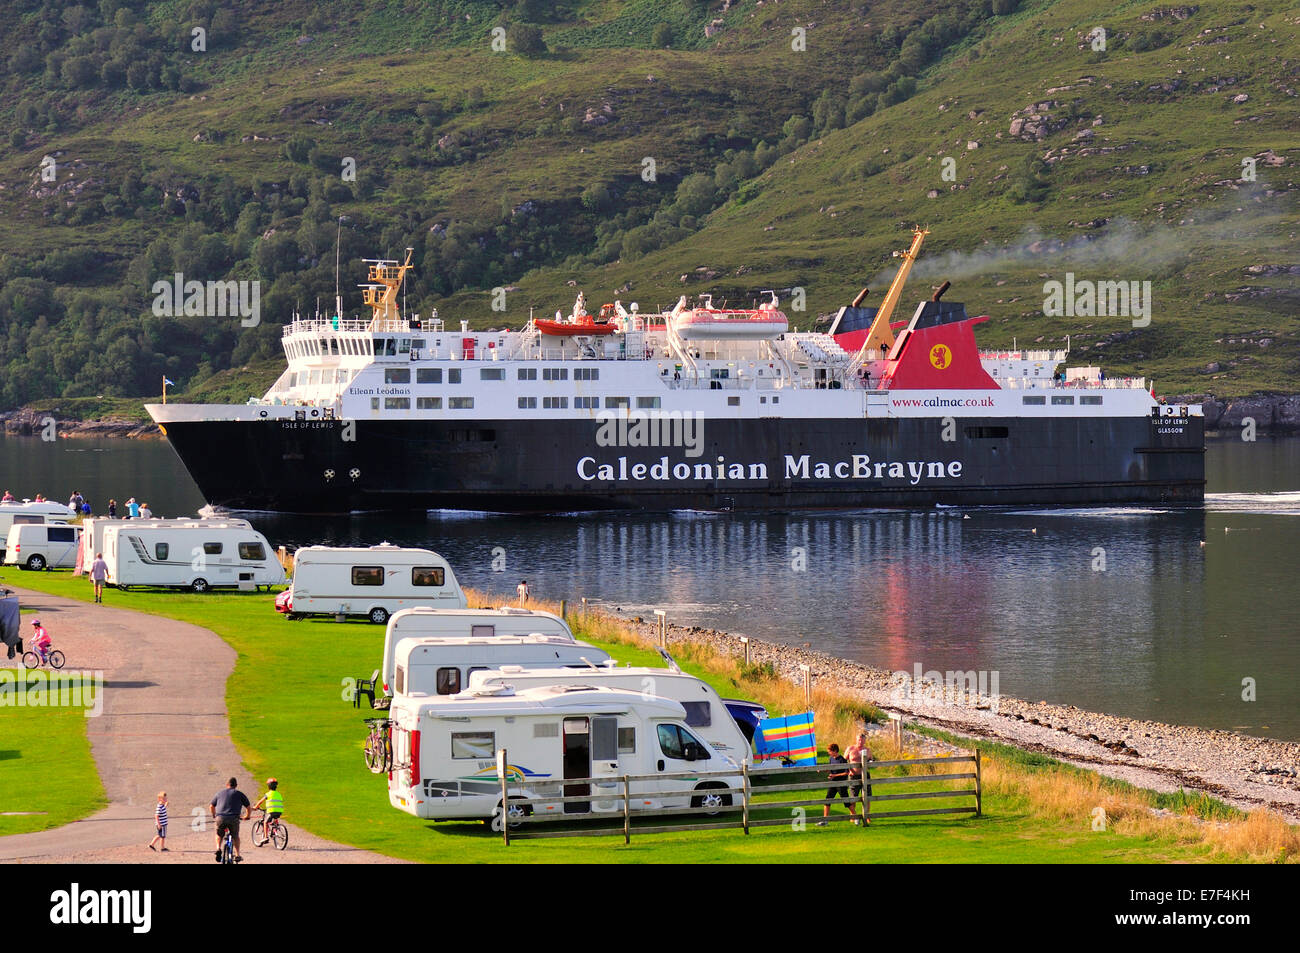 The ferry from Stornoway, Isle of Lewis in the Outer Hebrides, sailing past a camp site, Loch Broom towards Ullapool, - Stock Image